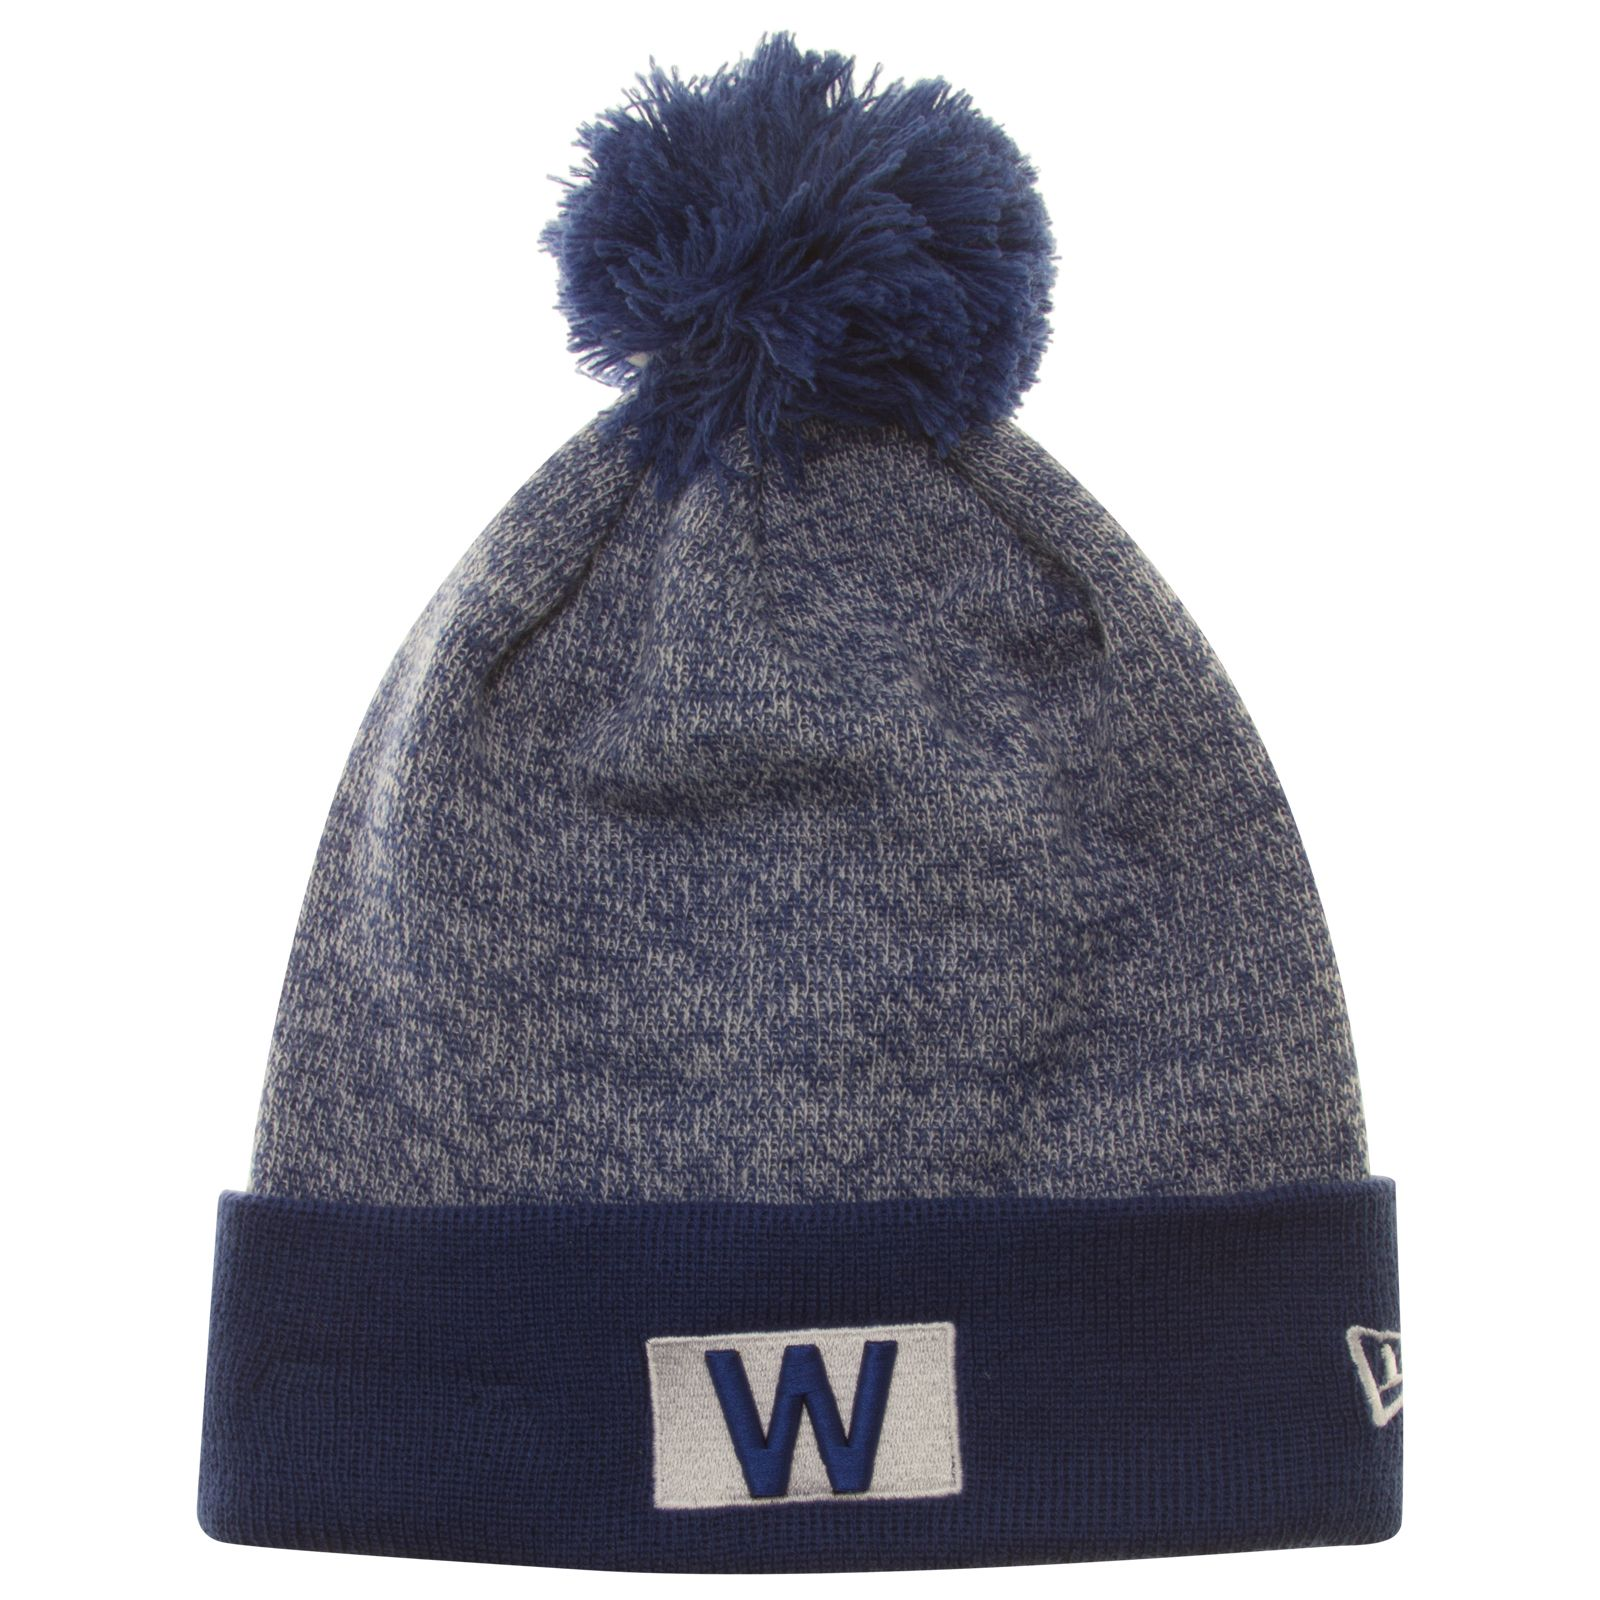 Chicago Cubs Heather Blue W Flag Knit Pom Hat by New Era  Chicago  Cubs   ChicagoCubs d145a373ce4